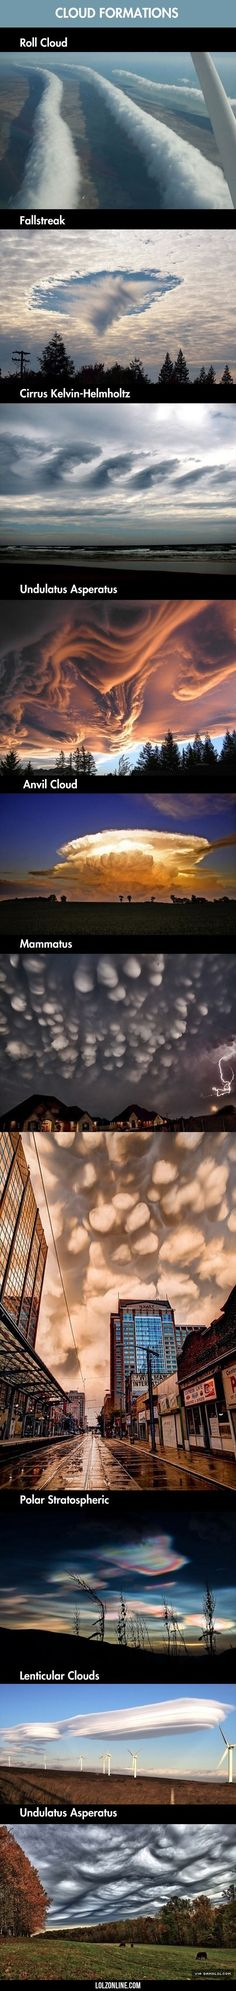 Unreal Cloud Formations #lol #haha #funny